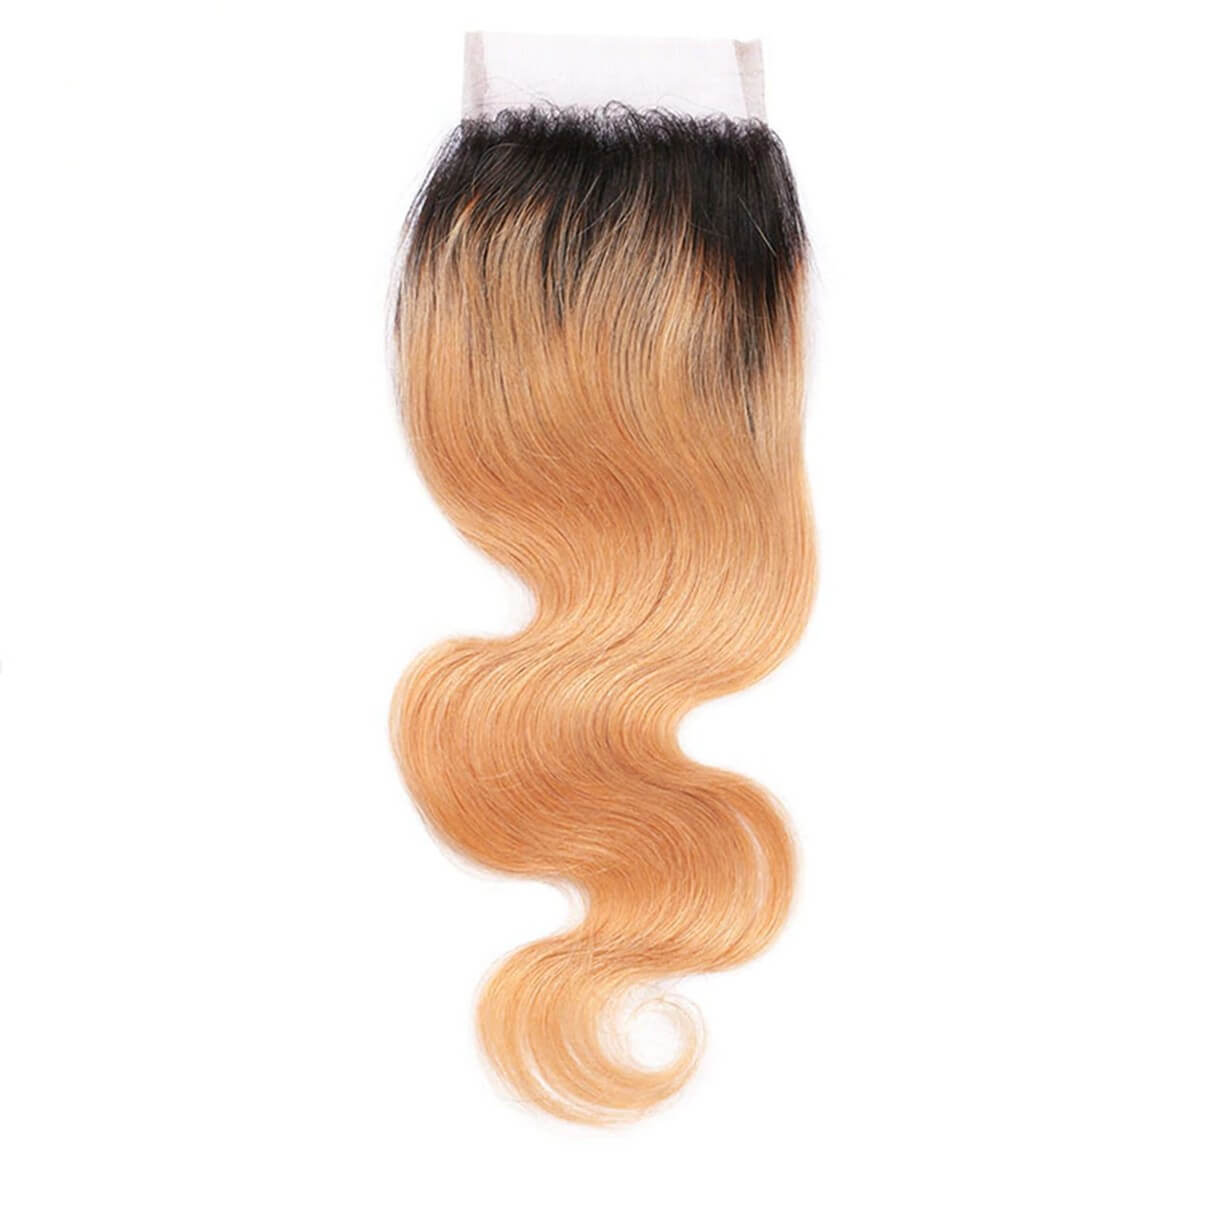 Lakihair 8A Blonde Ombre 1B/27 Lace Closure 4x4 Virgin Human Hair Body Wave  Closure